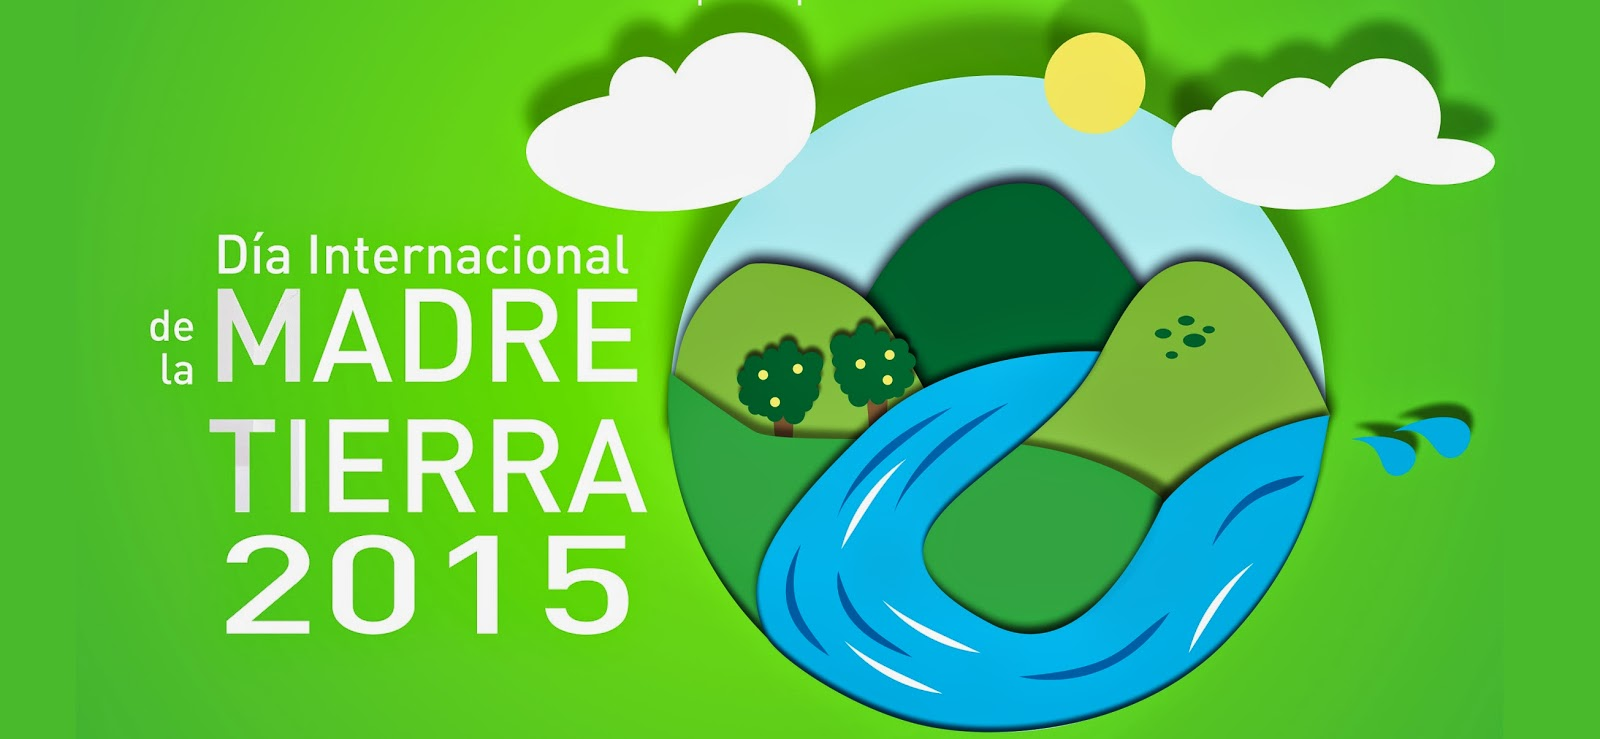 http://www.un.org/es/events/motherearthday/